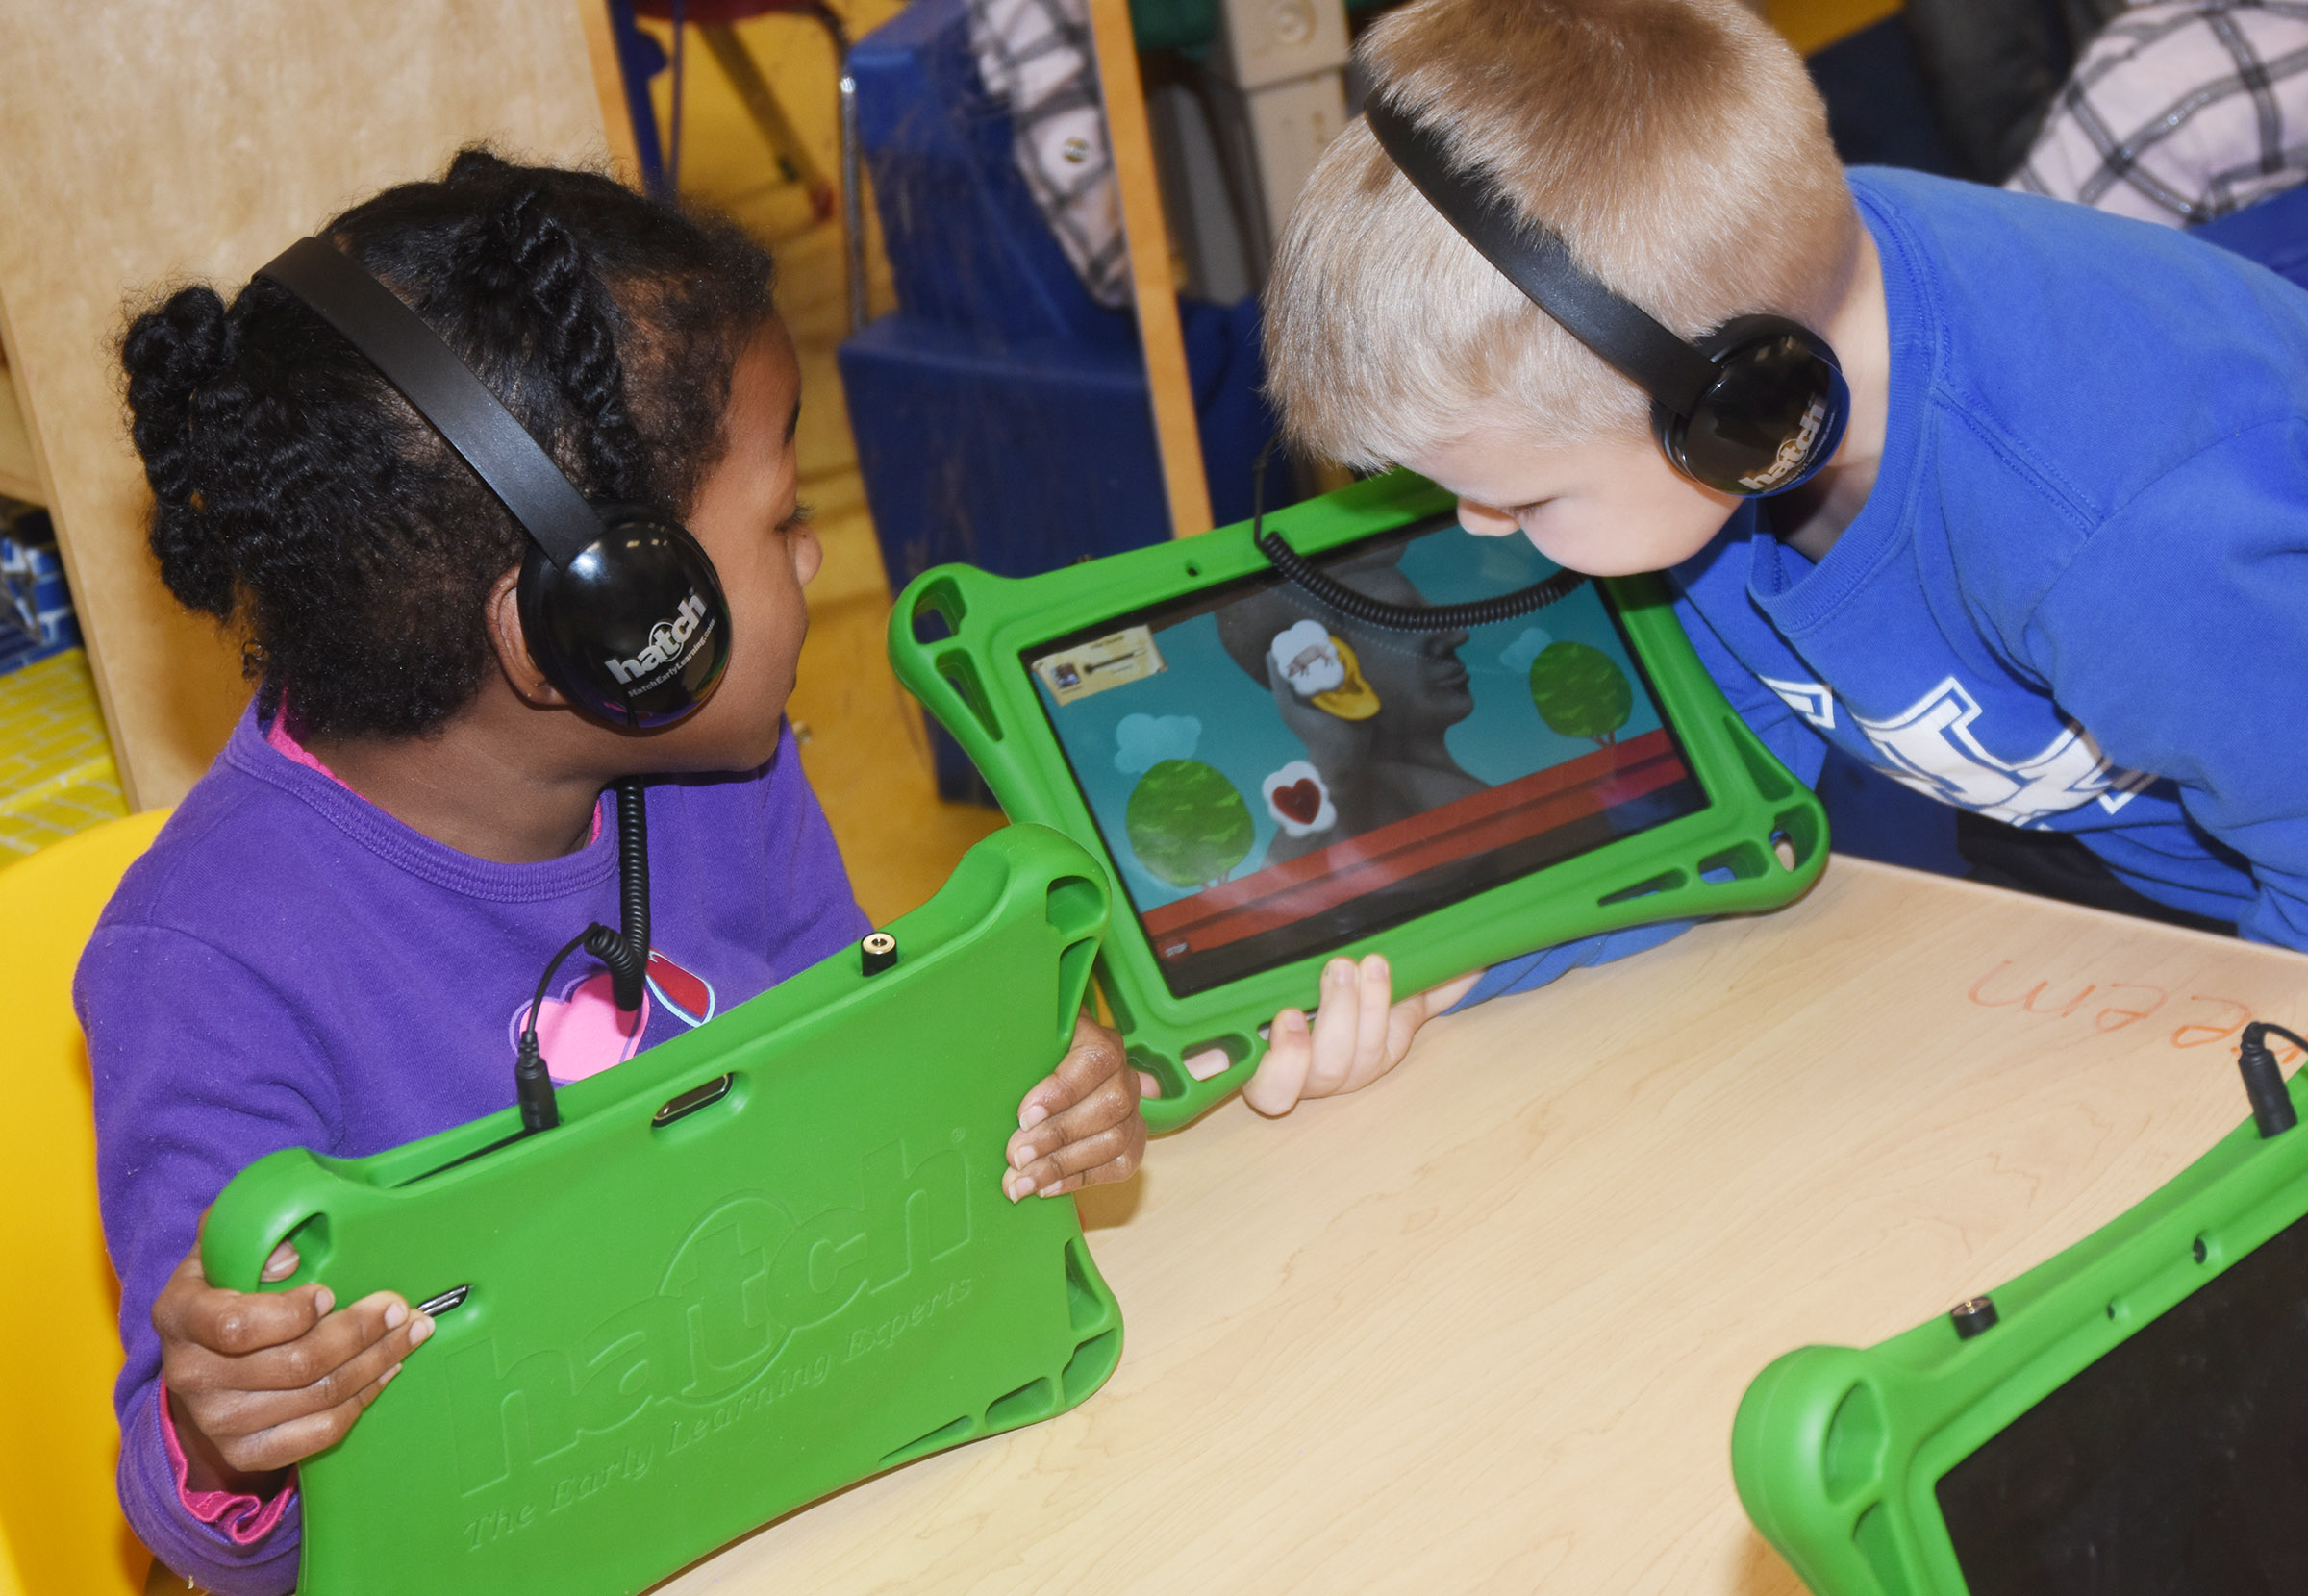 CES preschool students Priyanka Flores, at left, and Hoyt Davis watch a video on their iStartSmart tablets.